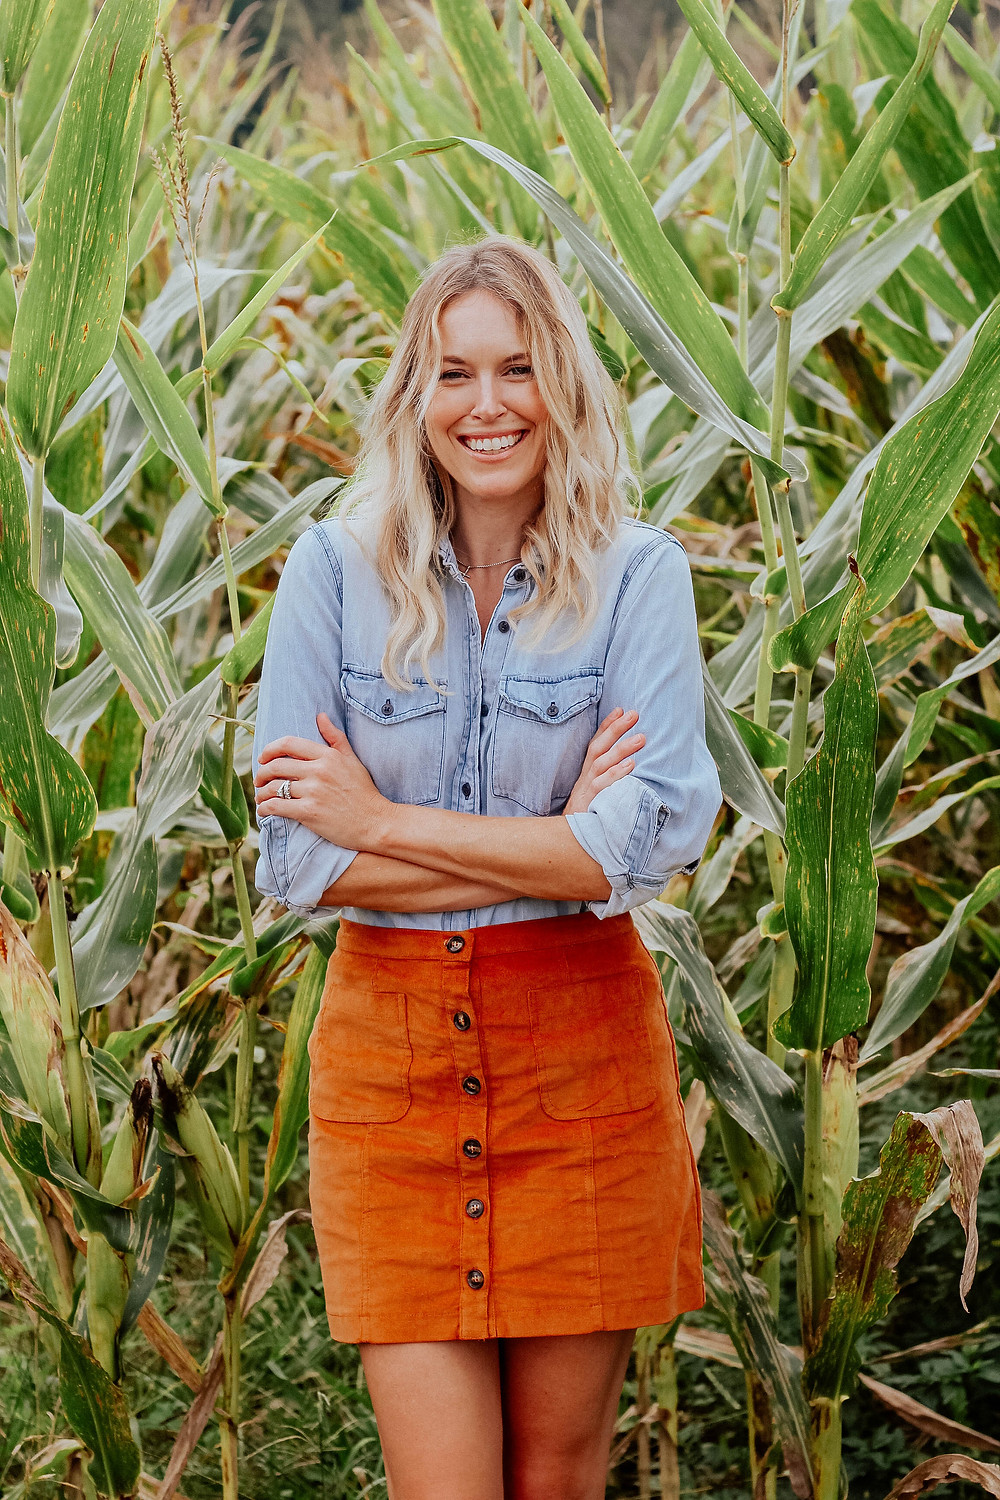 Brooke (The Tony Townie) wearing chambray blouse and corduroy skirt walks through corn field.